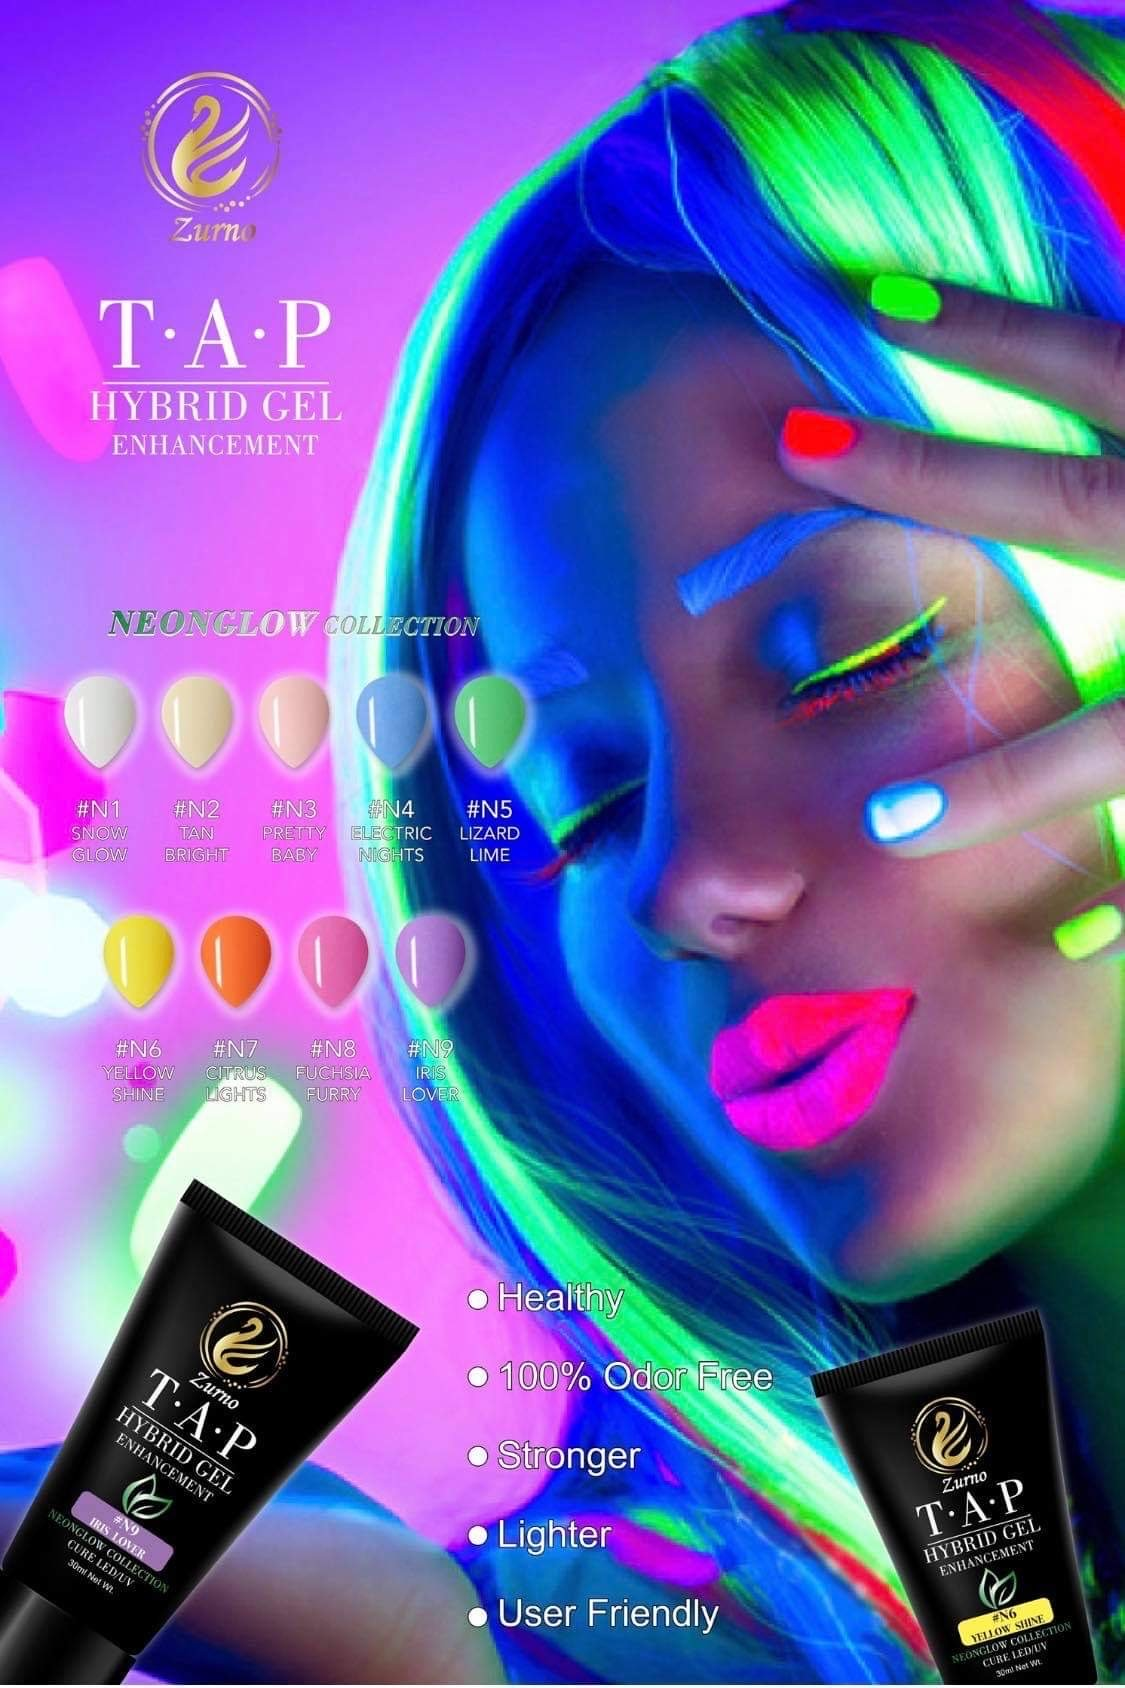 T.A.P- #N4 Electric Nights- 30ml HYBRID GEL / NEONGLOW Collection